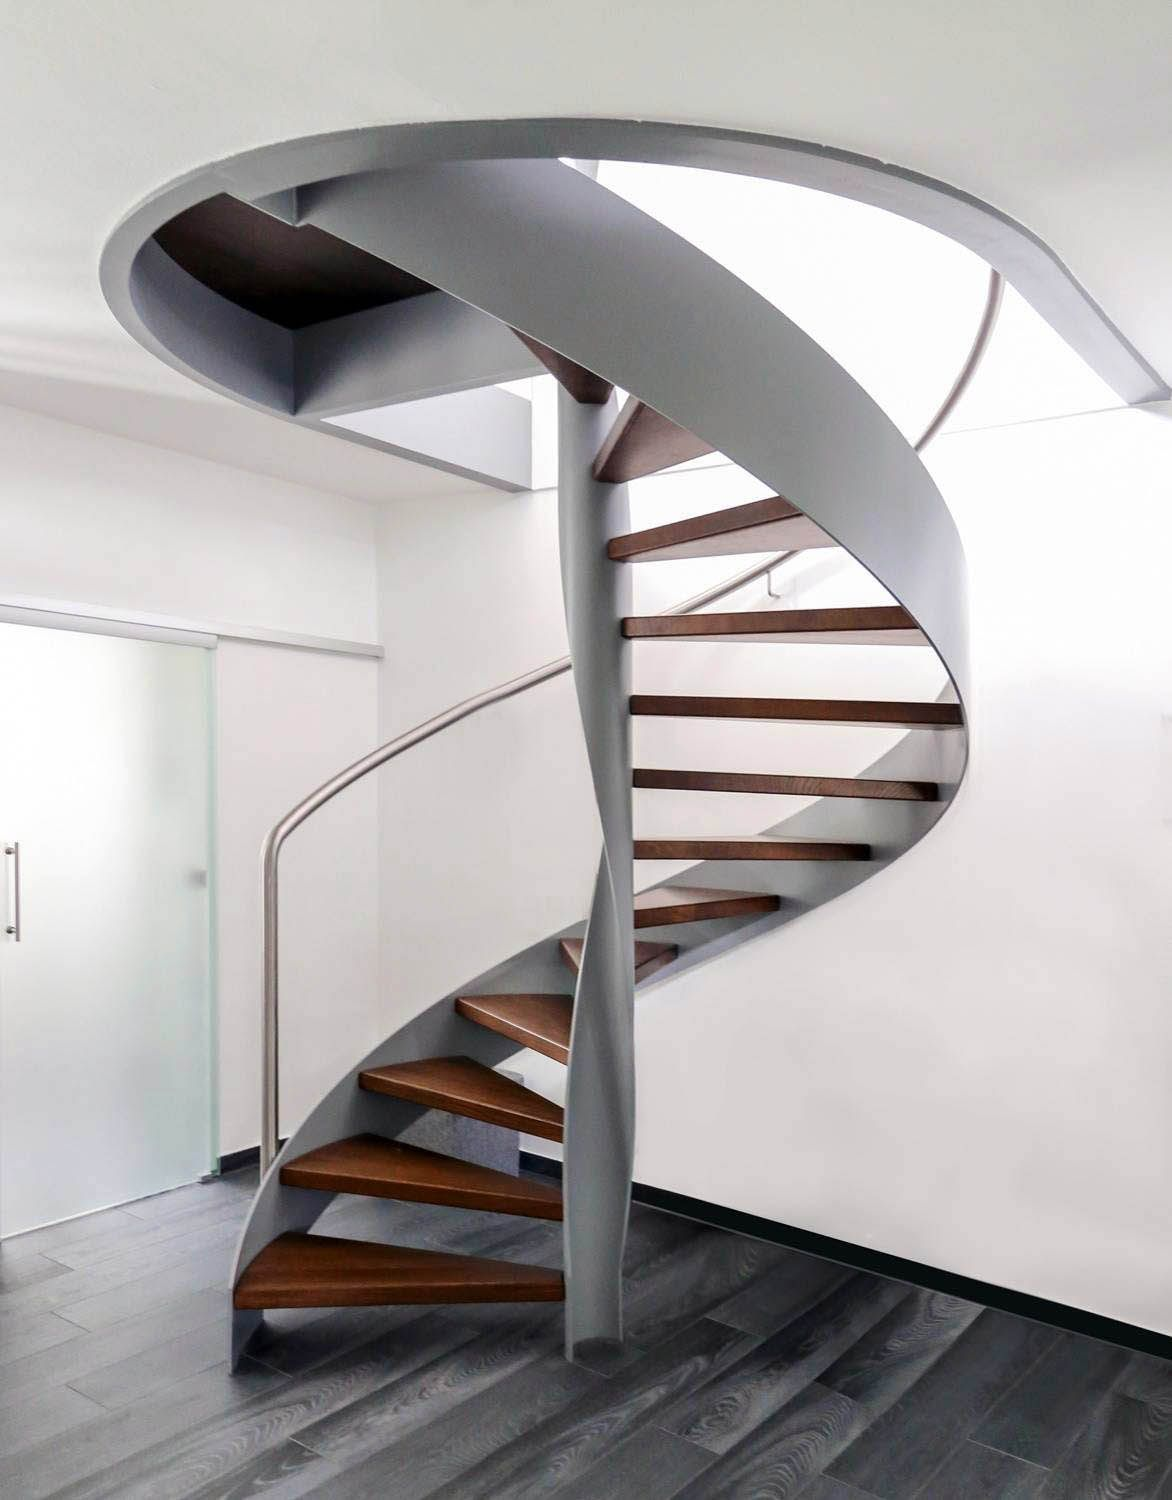 Best 13 Spiral Staircase Design Ideas For Small Spaces With 640 x 480